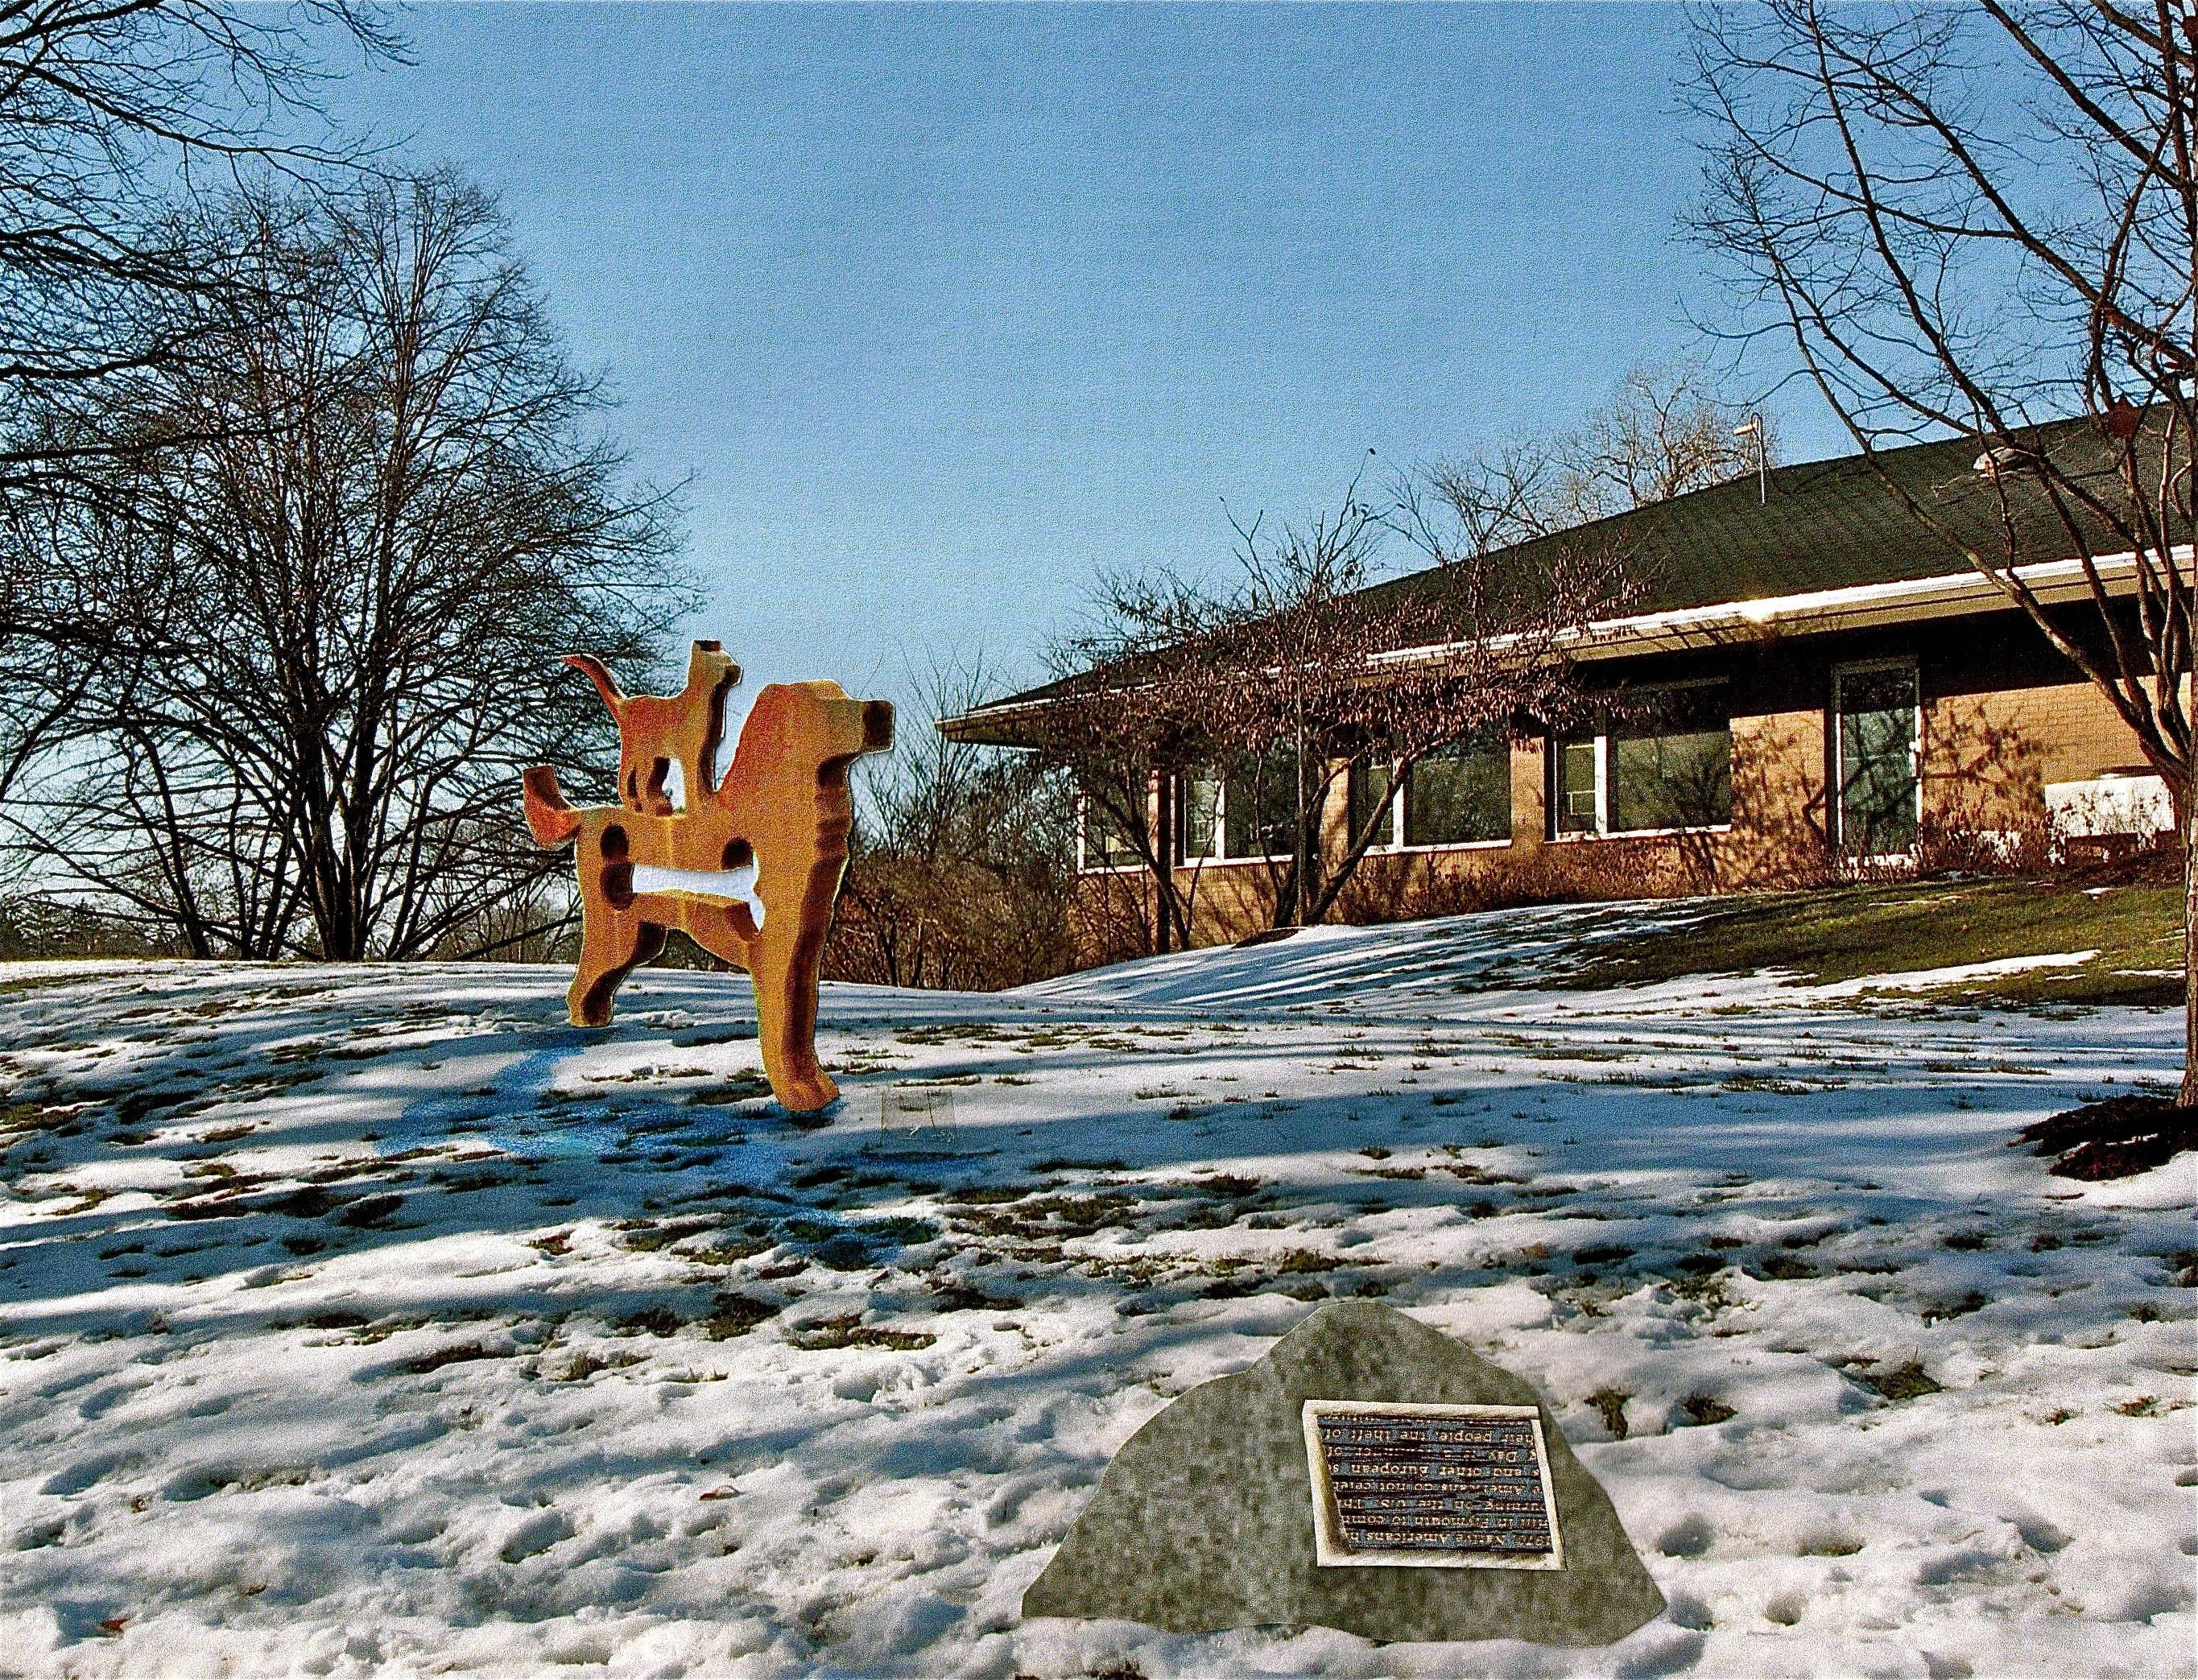 This rendering shows where a sculpture of a dog and cat commissioned to mark the 35th anniversary of the Naperville Area Humane Society will be installed this summer or fall between the Naperville Park District administration building and Centennial Beach.